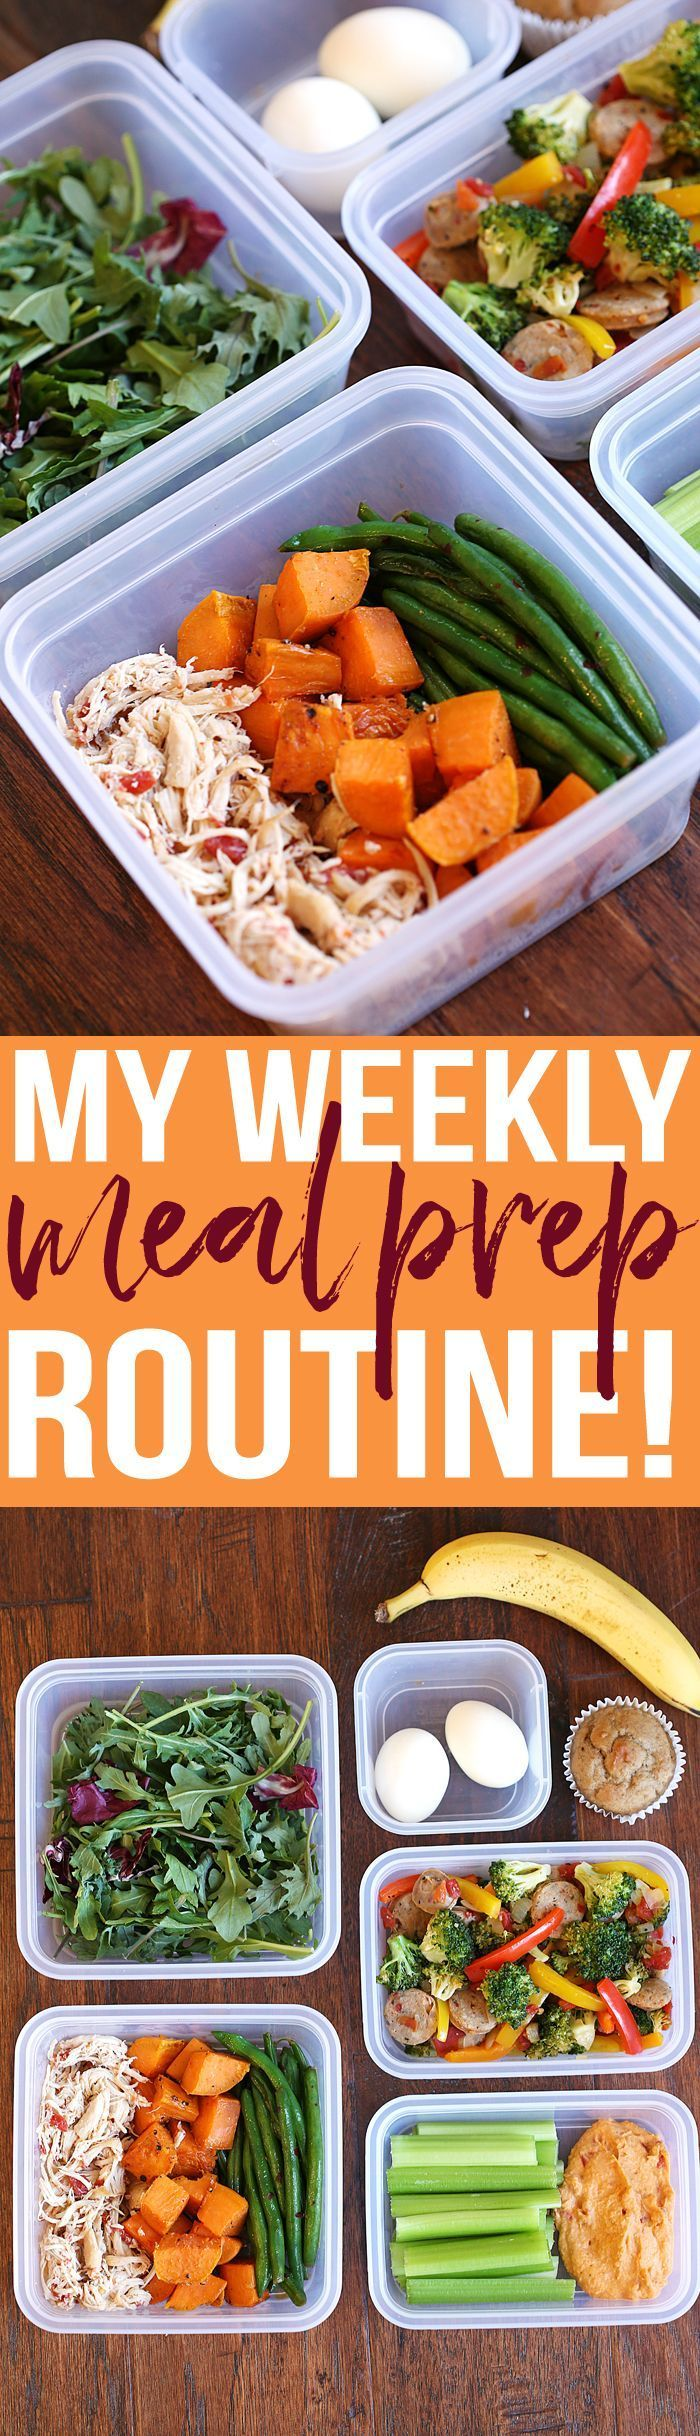 My Weekly Meal Prep Routine